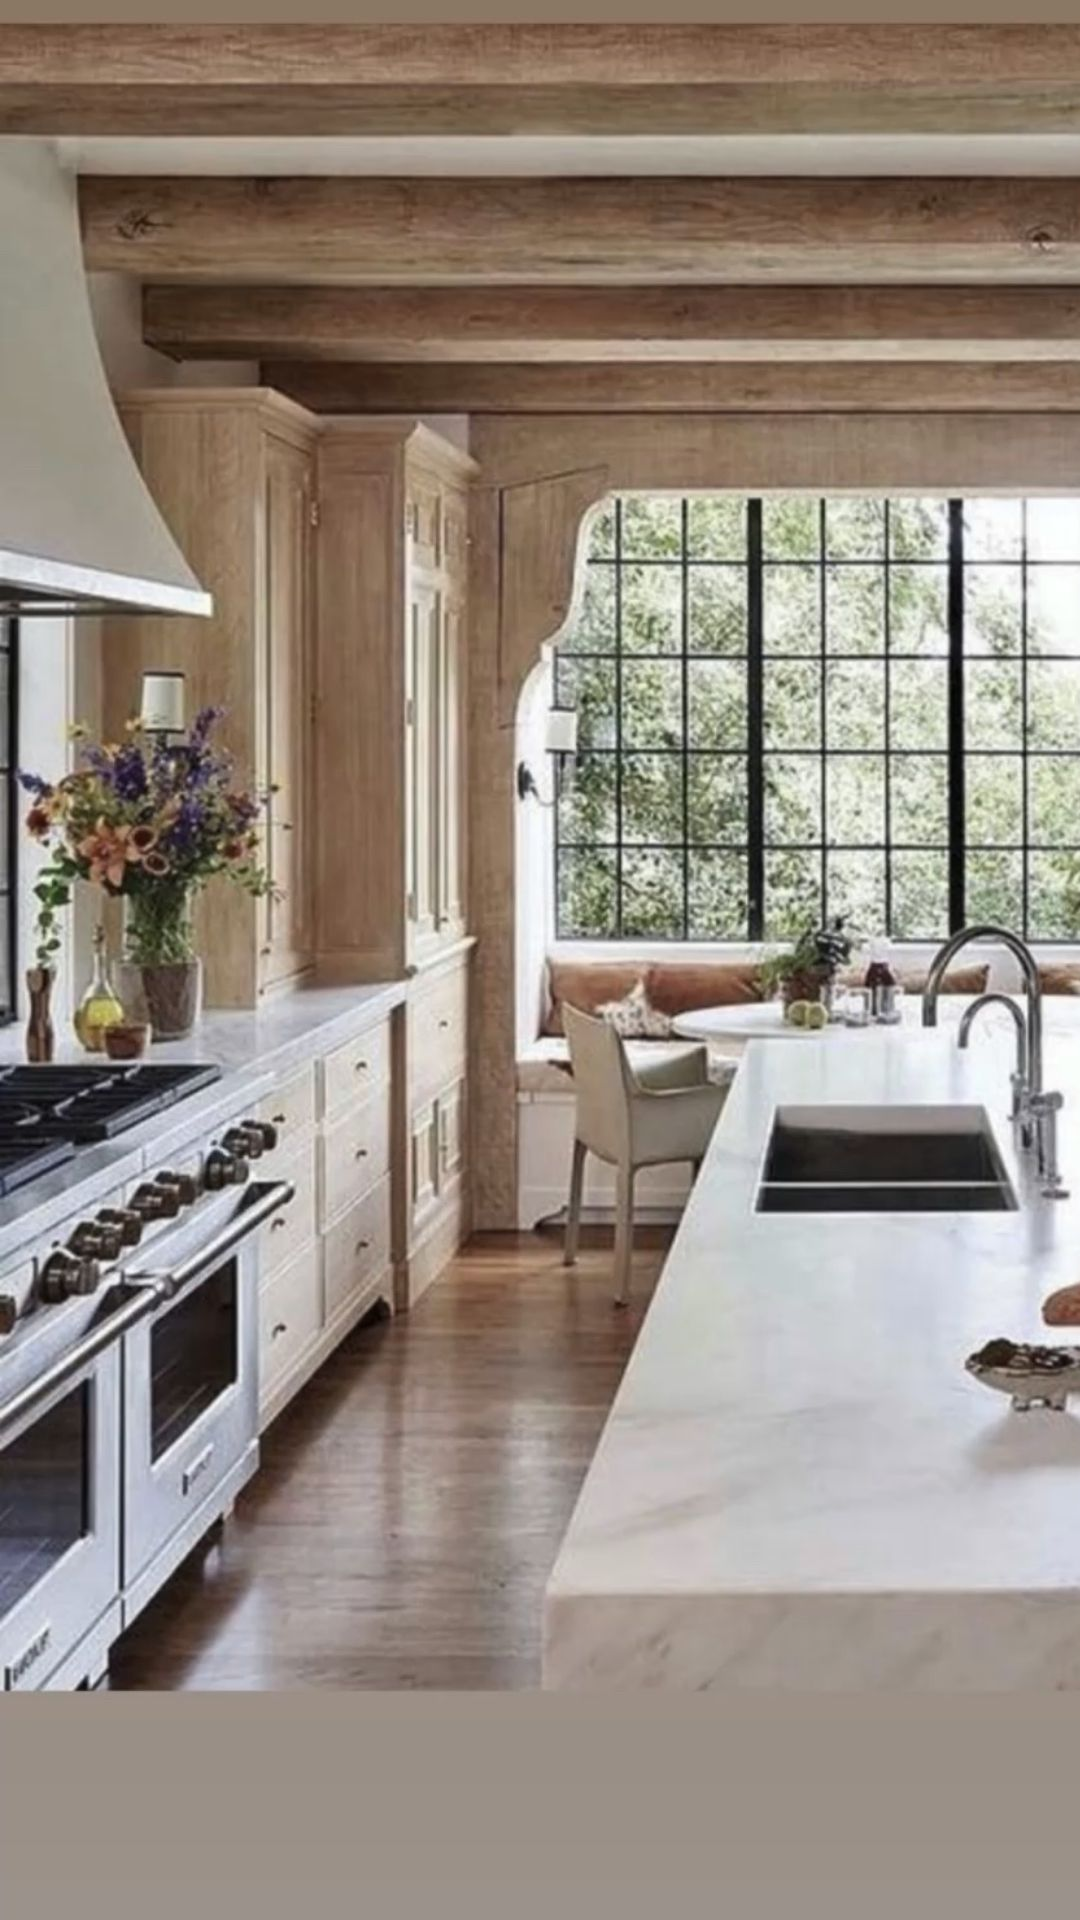 19 Times Linen Roman Shades Looked Effortlessly Cool